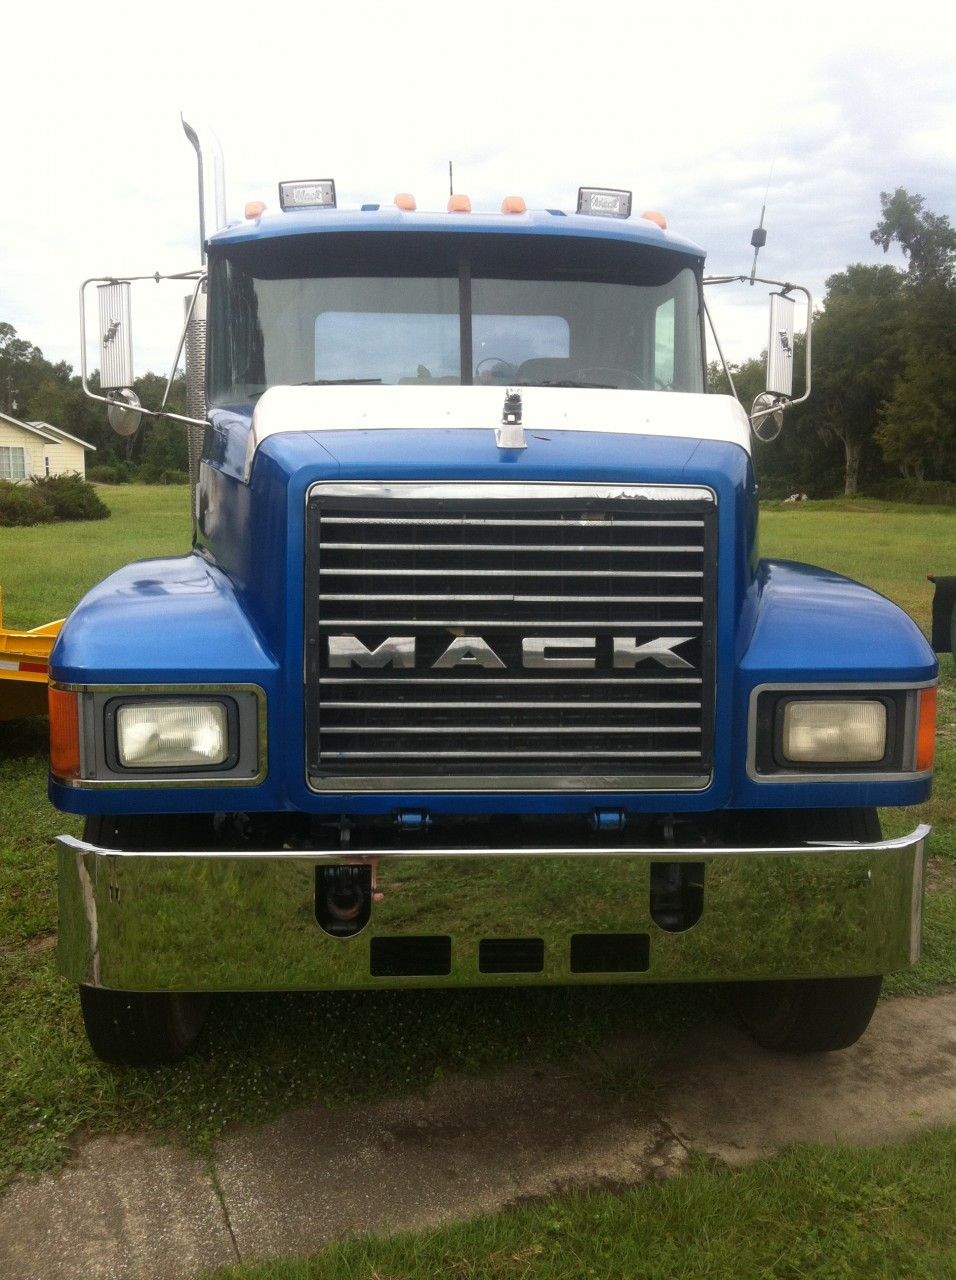 Mack Ct713 Truck Wiring Opinions About Diagram Dump Trailer Schematics Diagrams U2022 Rh Sierrahullfestival Com Granite Air Conditioner Problems